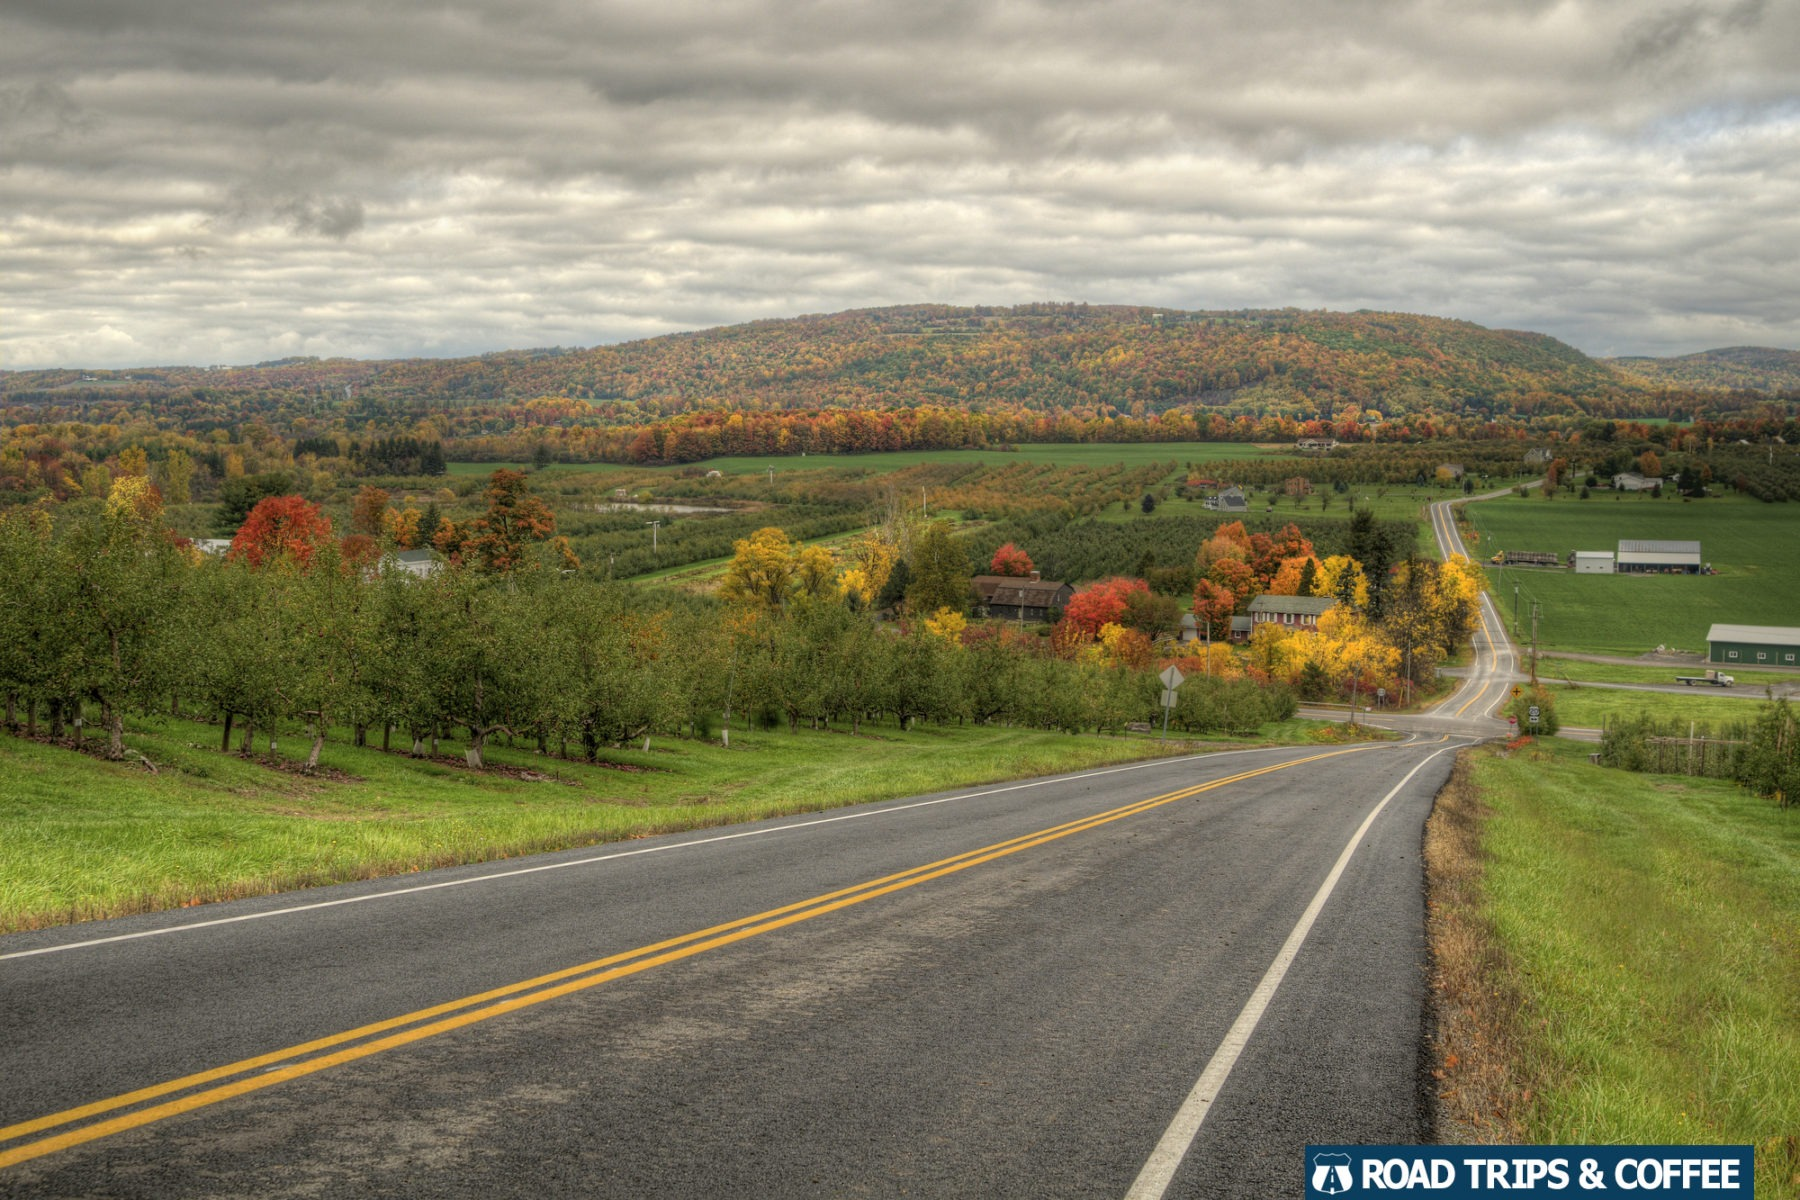 A long highway across New York during the peak of fall colors.